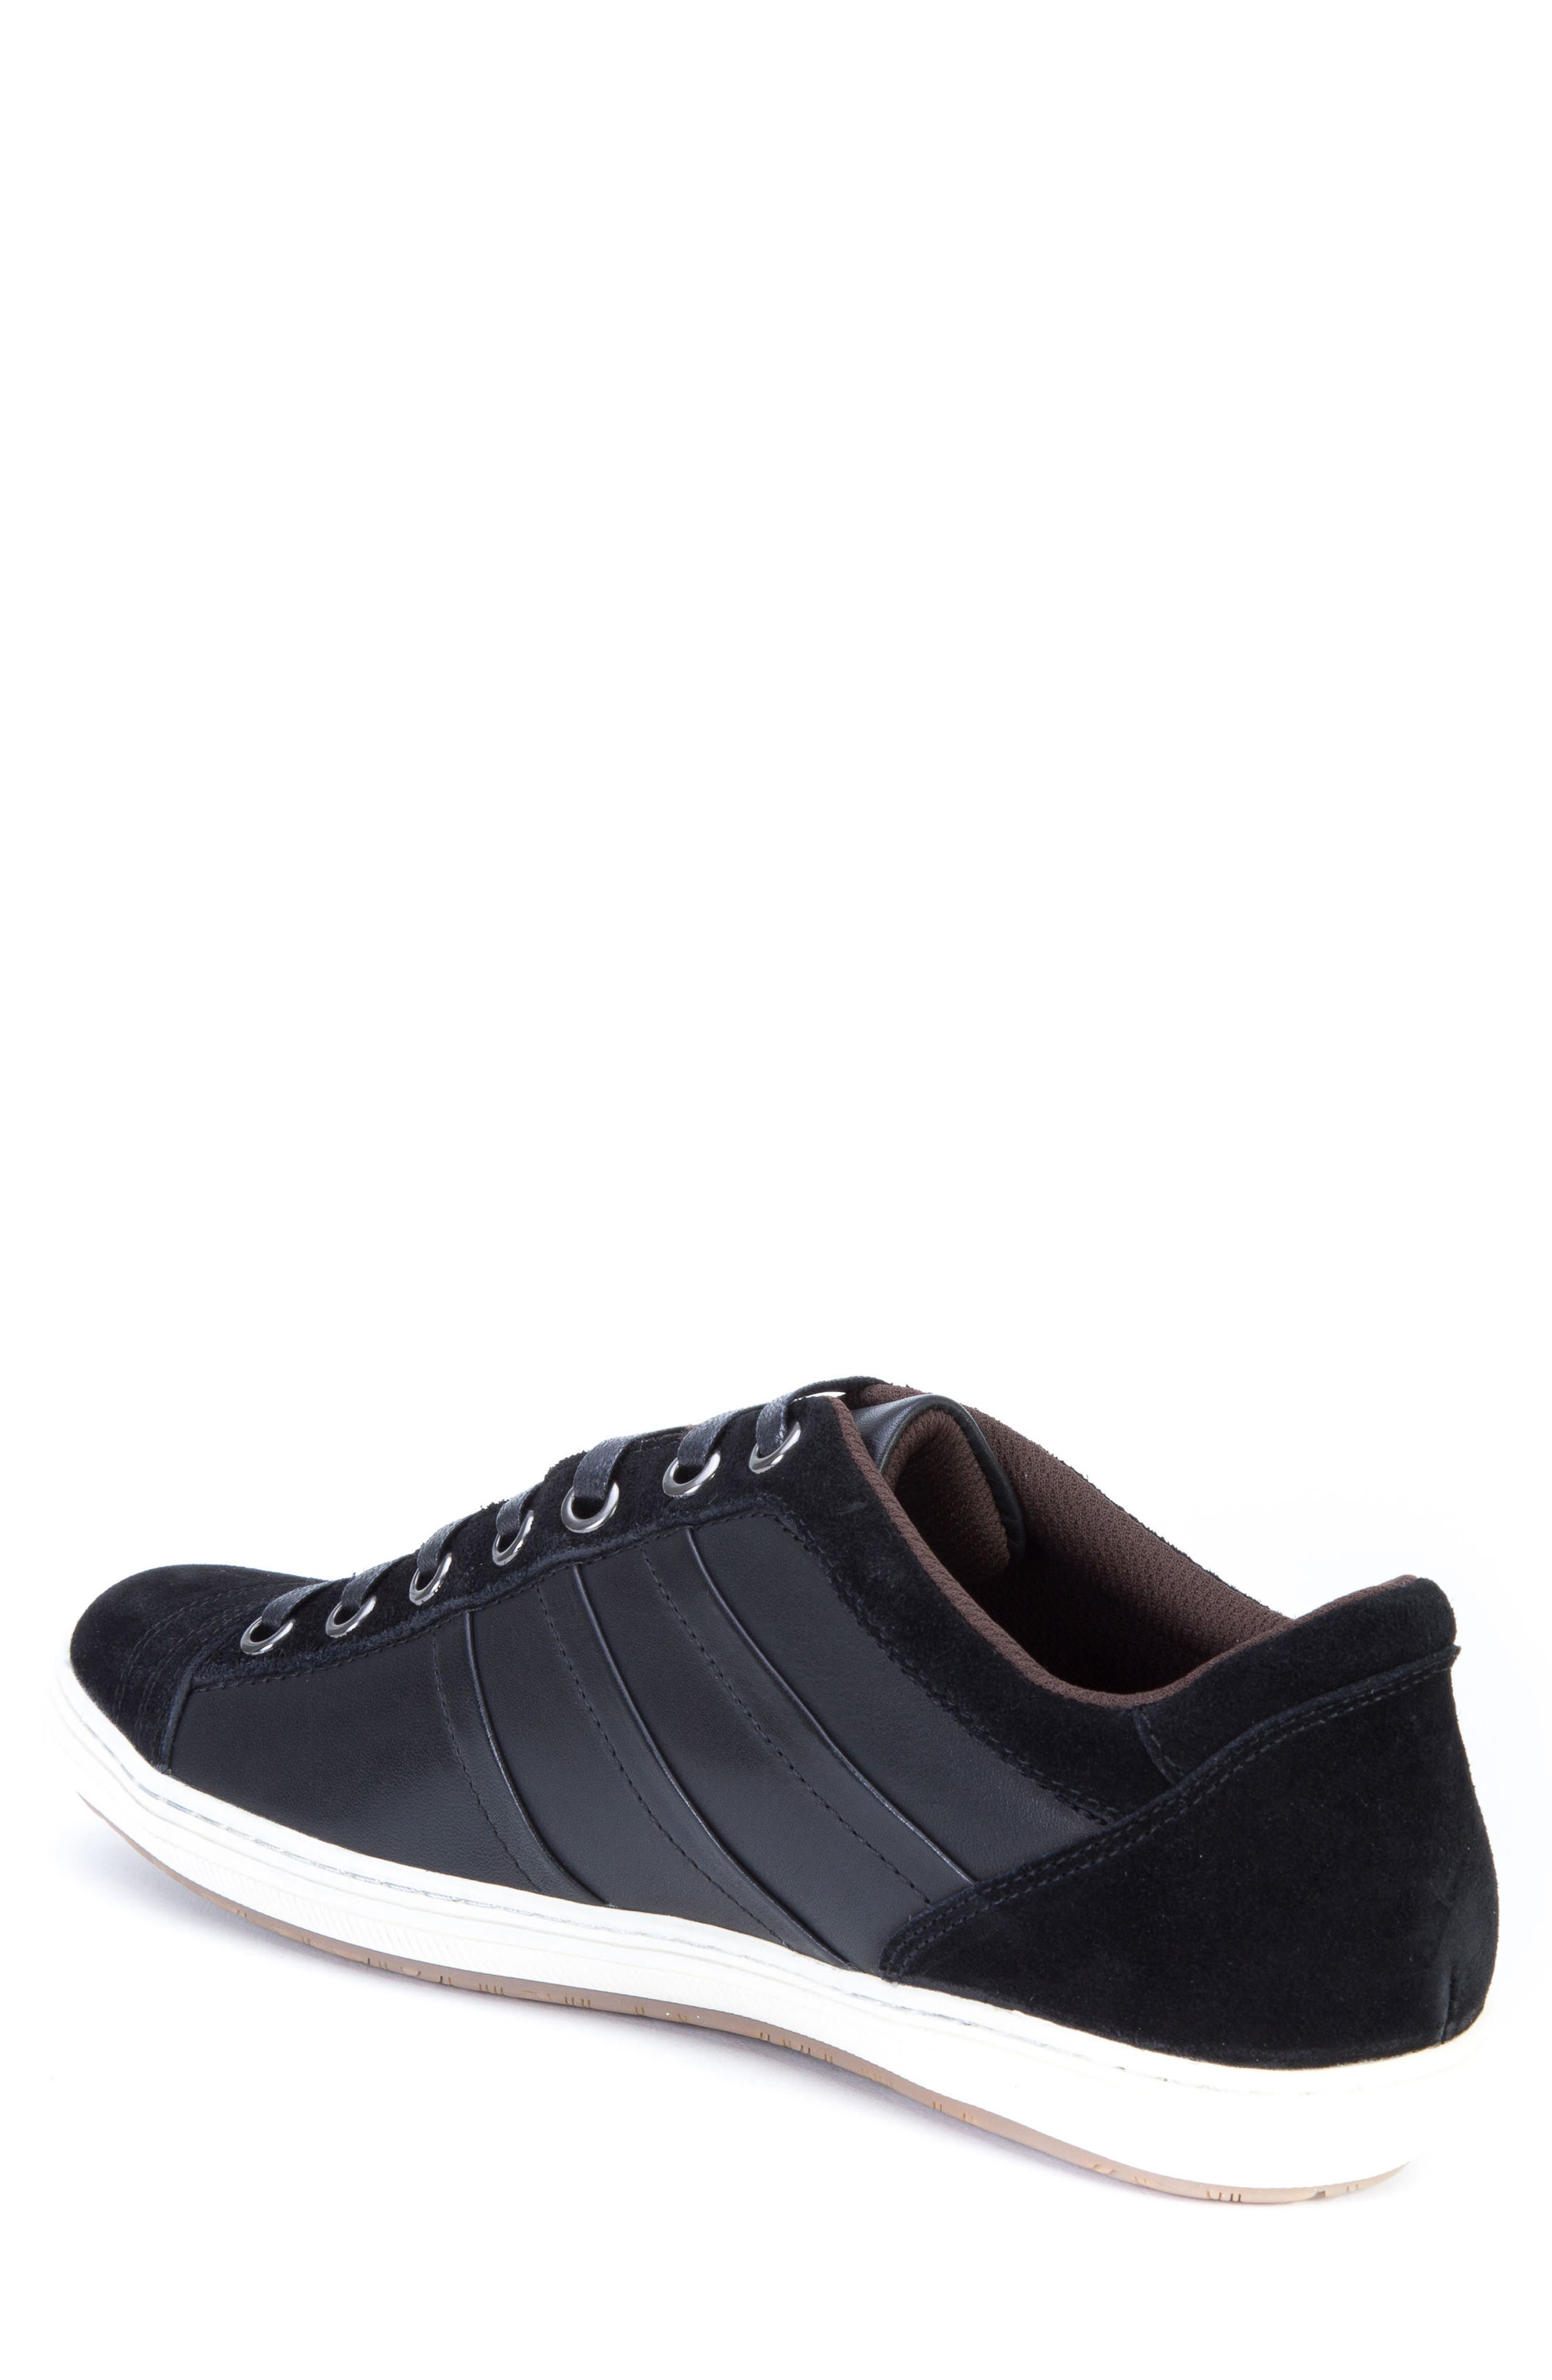 Jive Sneaker,                             Alternate thumbnail 2, color,                             Black Leather/Suede